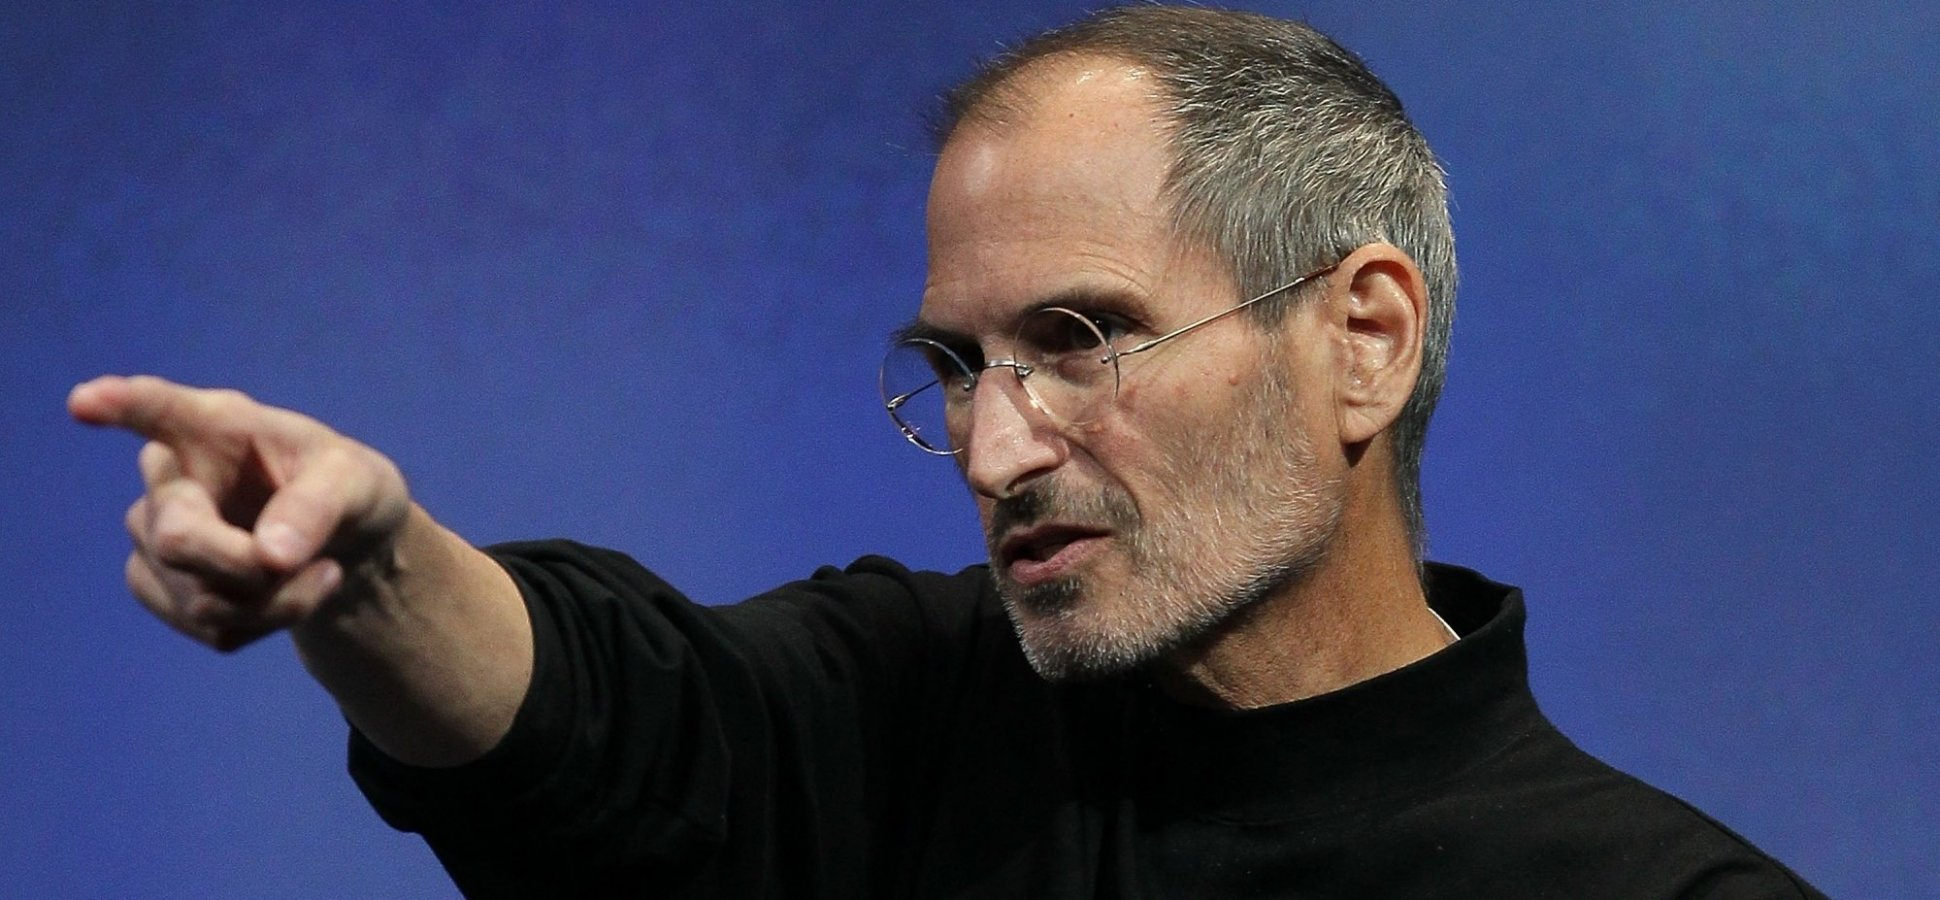 Steve Jobs Believed This Was the 1 Thing That Made the Difference Between Selling and Failing (It's Just Been Revealed)